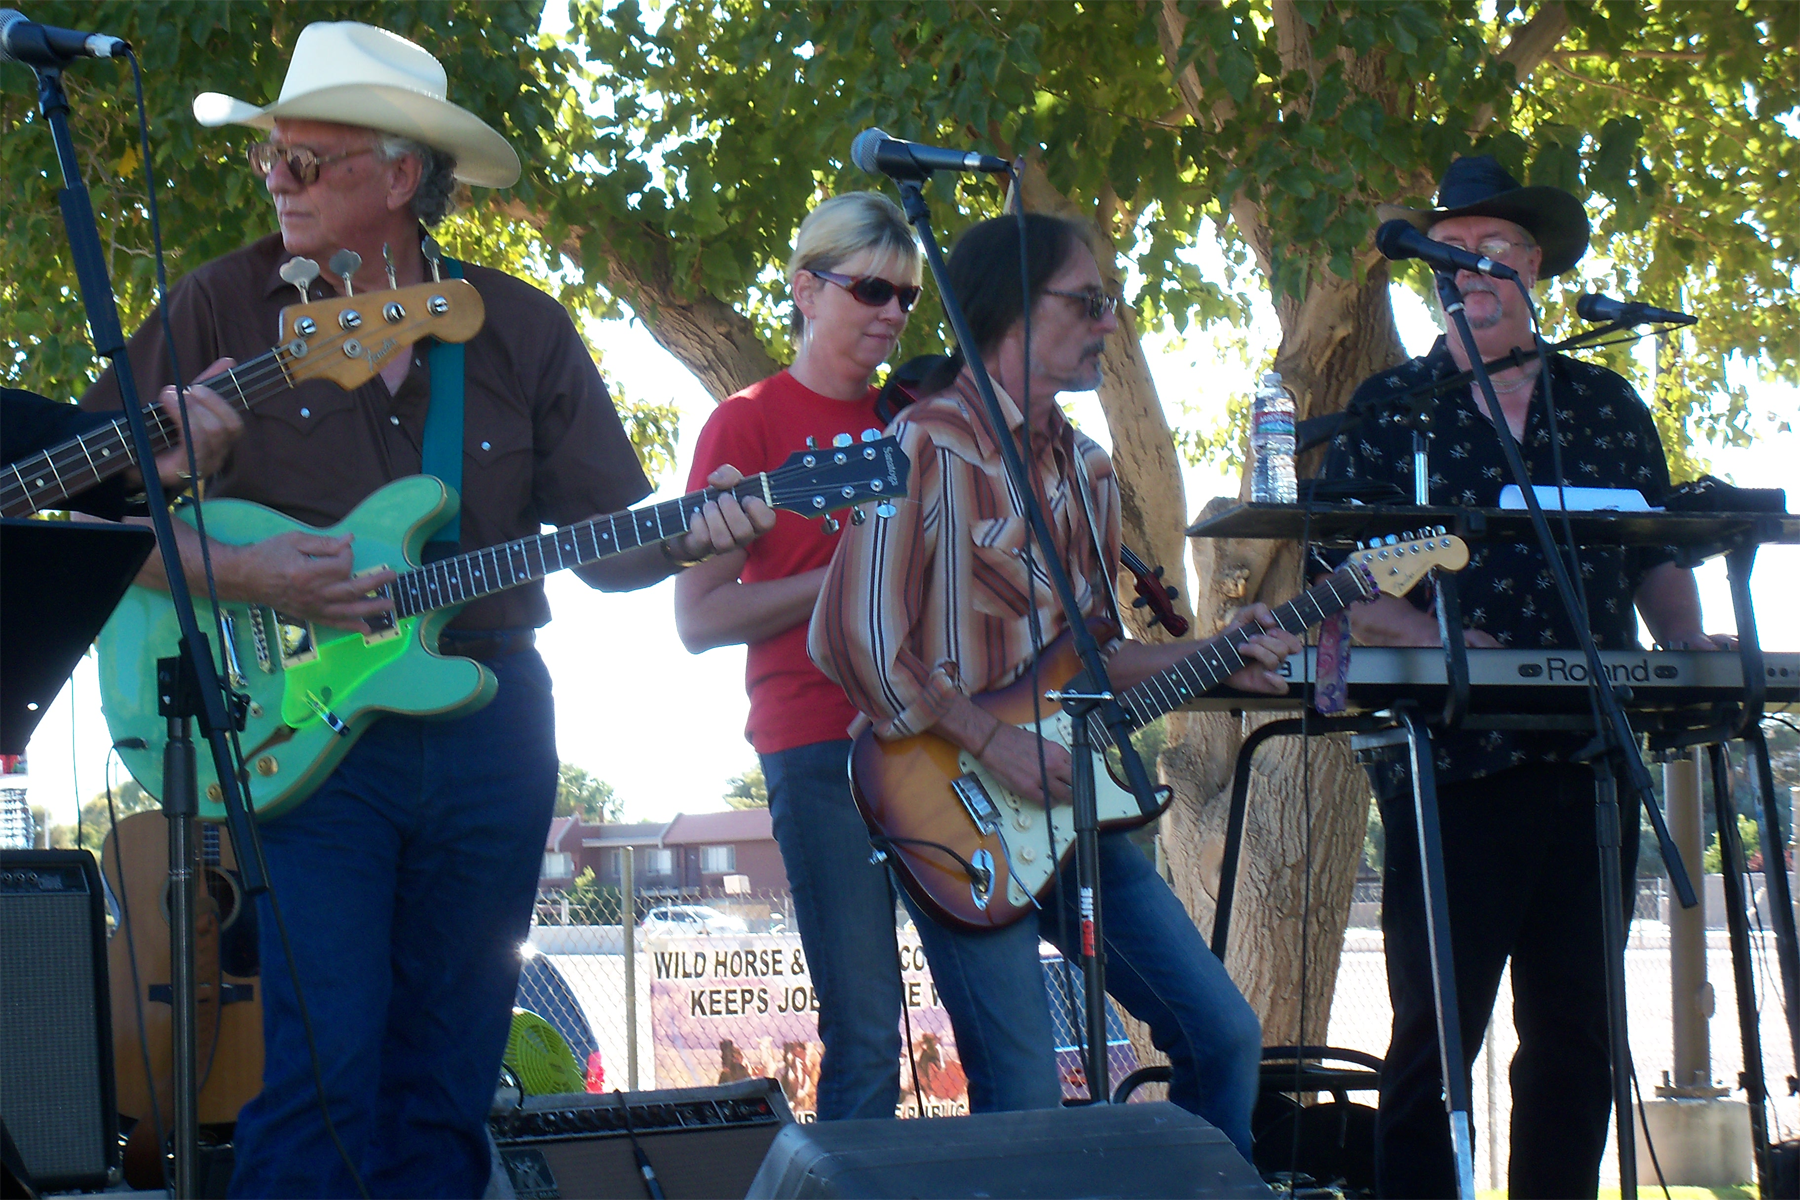 """Grey Beard Bandit performing """"Wild Horses Need Our Voices"""" live at wild horse rally in Las Vegan, Nevada on October 11, 2010. Credit: The Horse Fund. (click to enlarge)."""